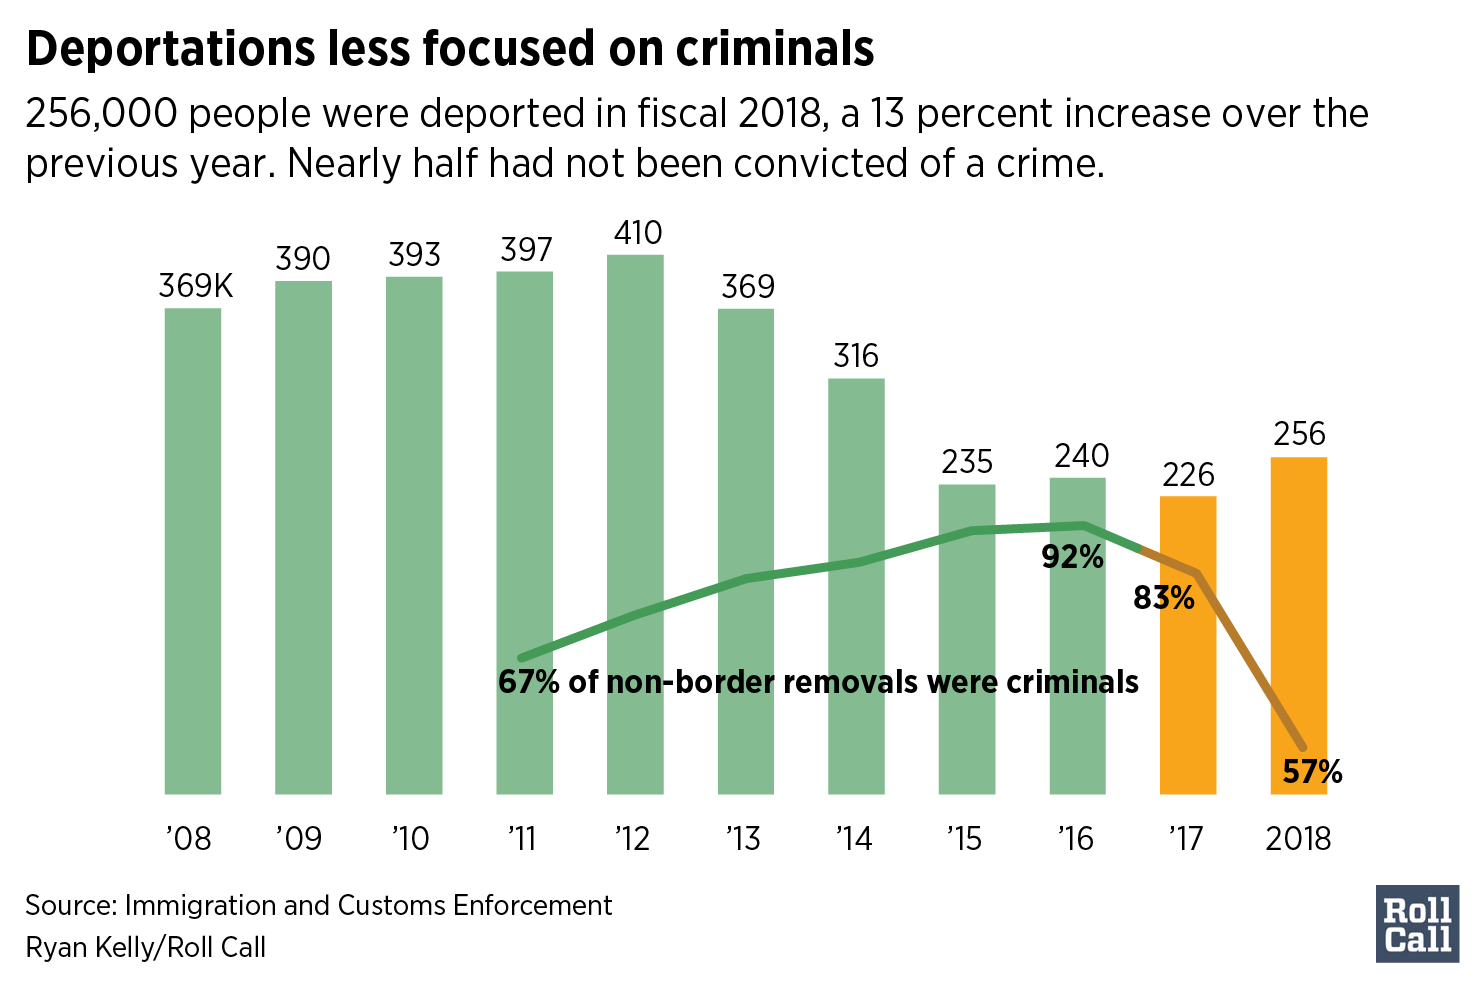 Deportations less focused on criminals